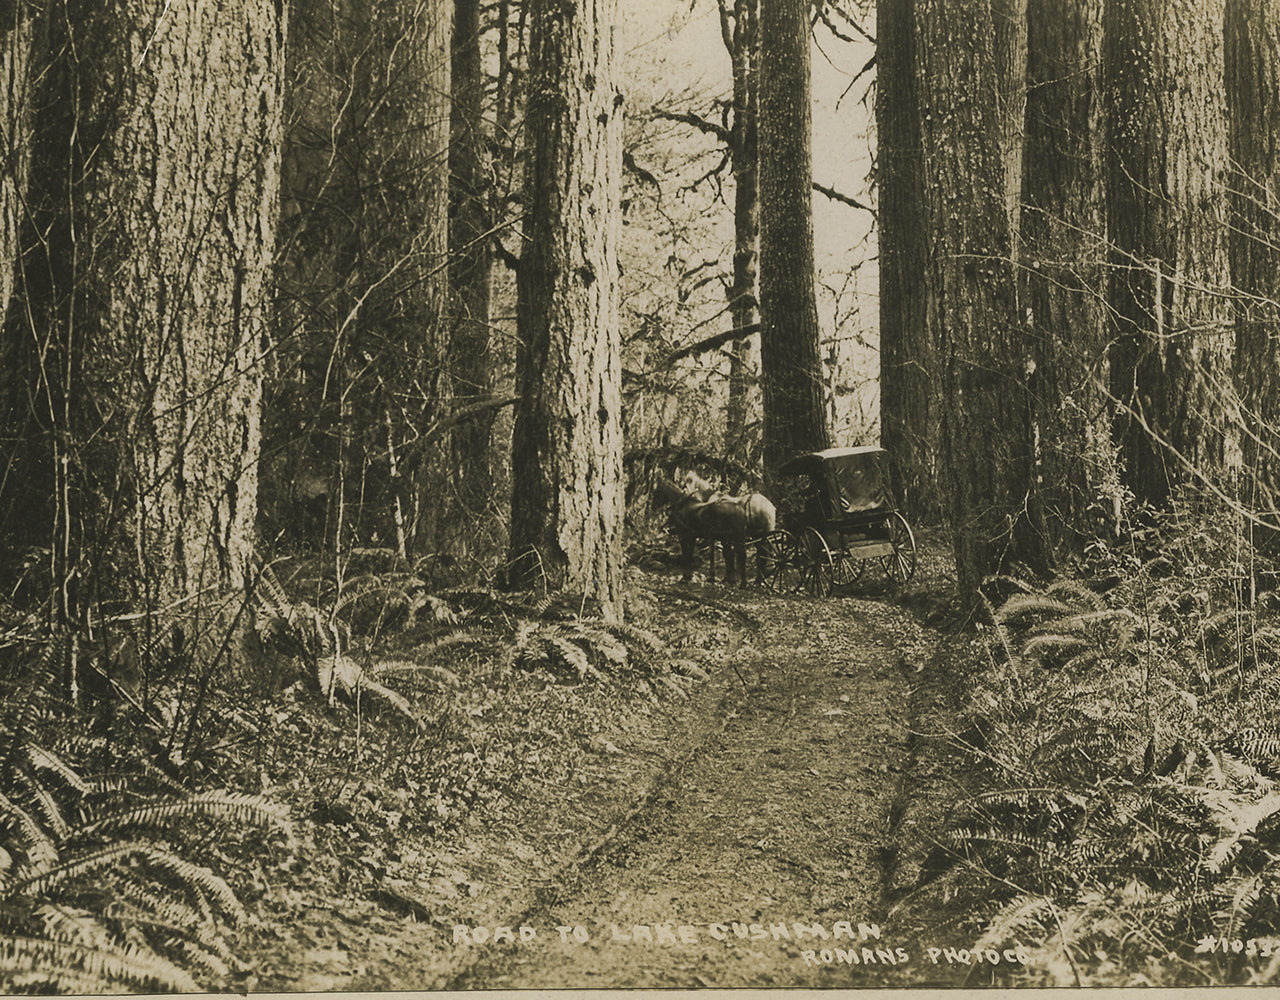 Wagon trail to Lake Cushman through the old growth forest